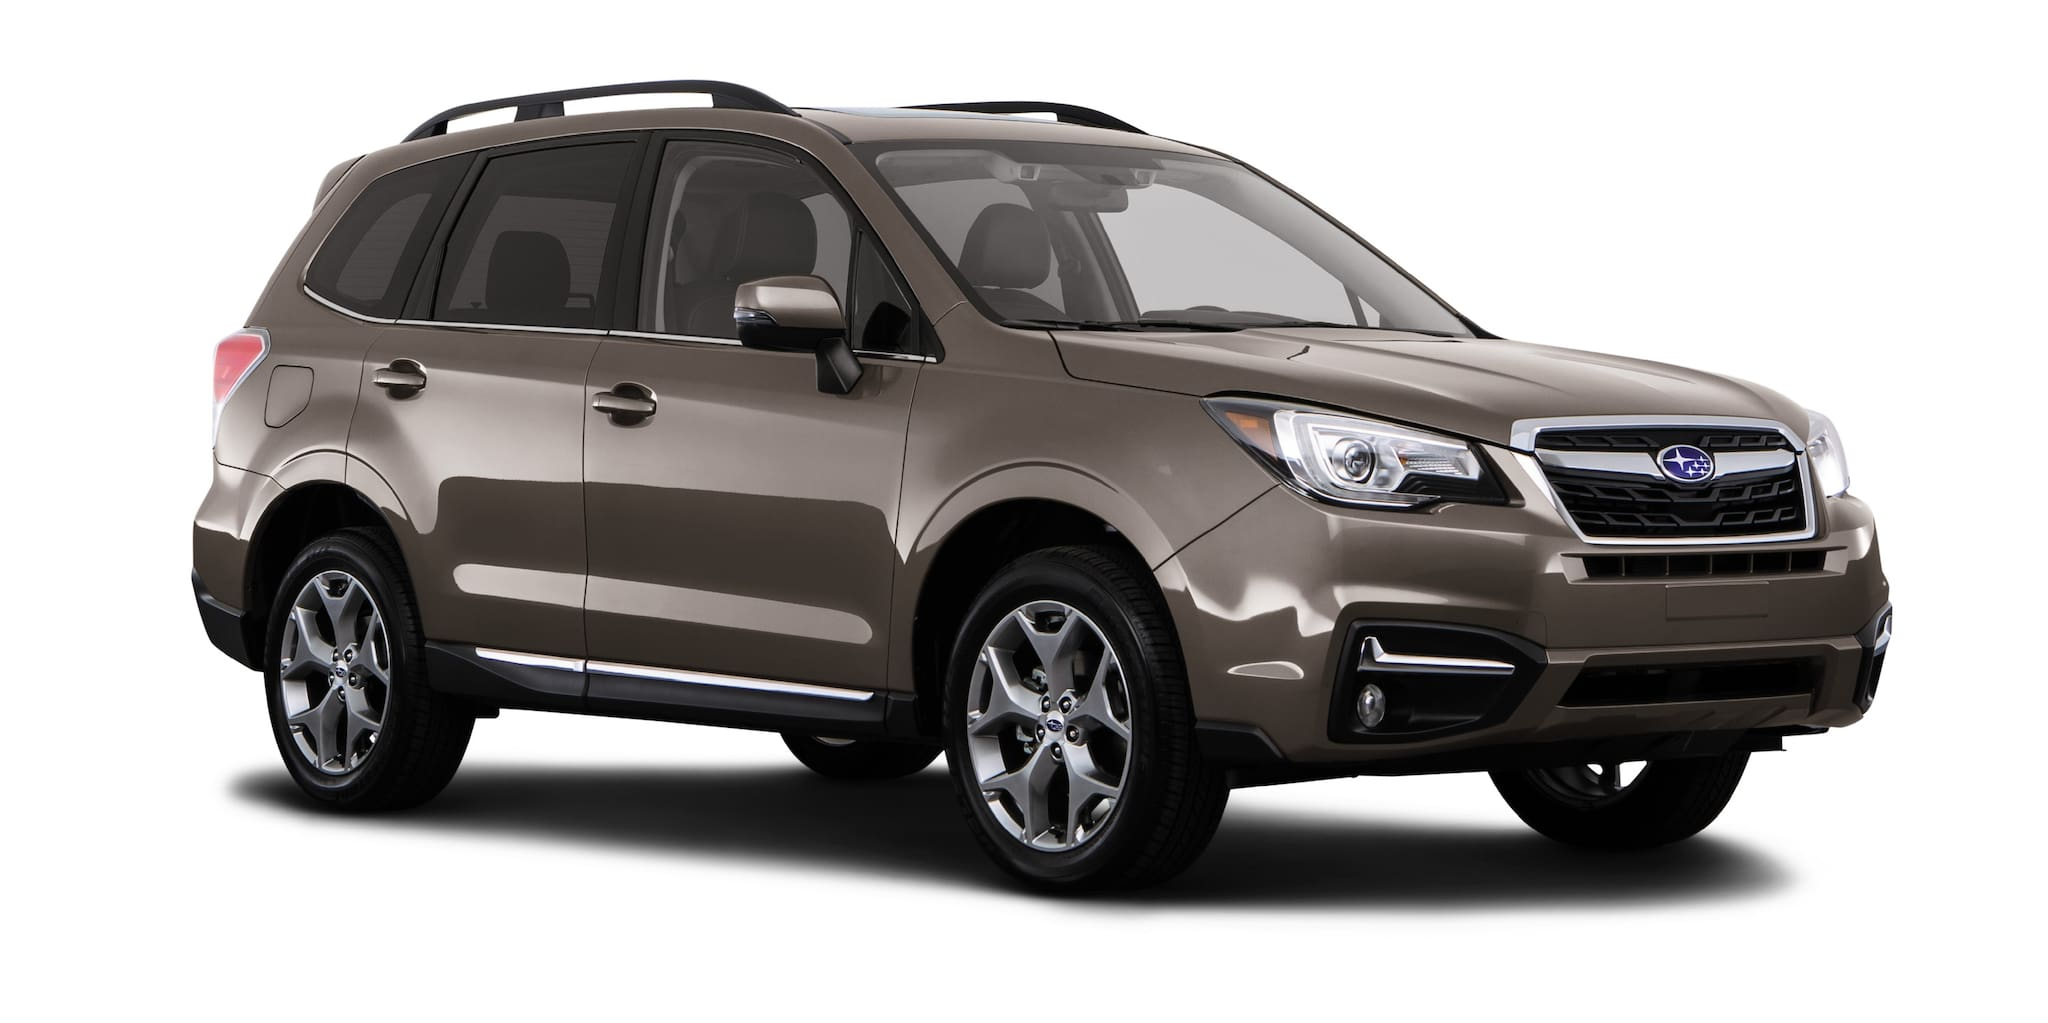 Beat the Excise tax with the Subaru Forester